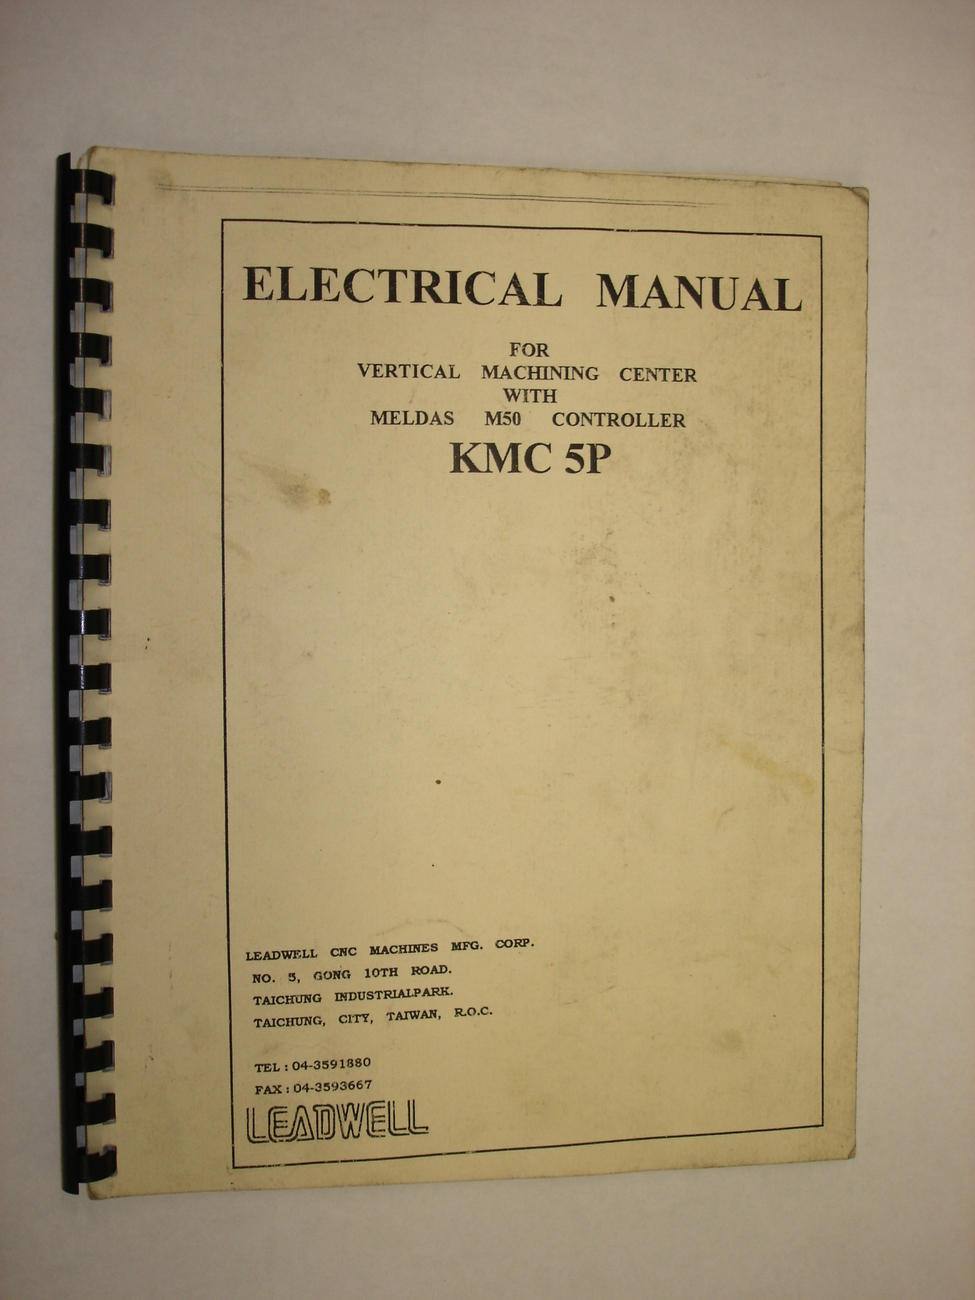 Leadwell KMC-5P Electrical Manual